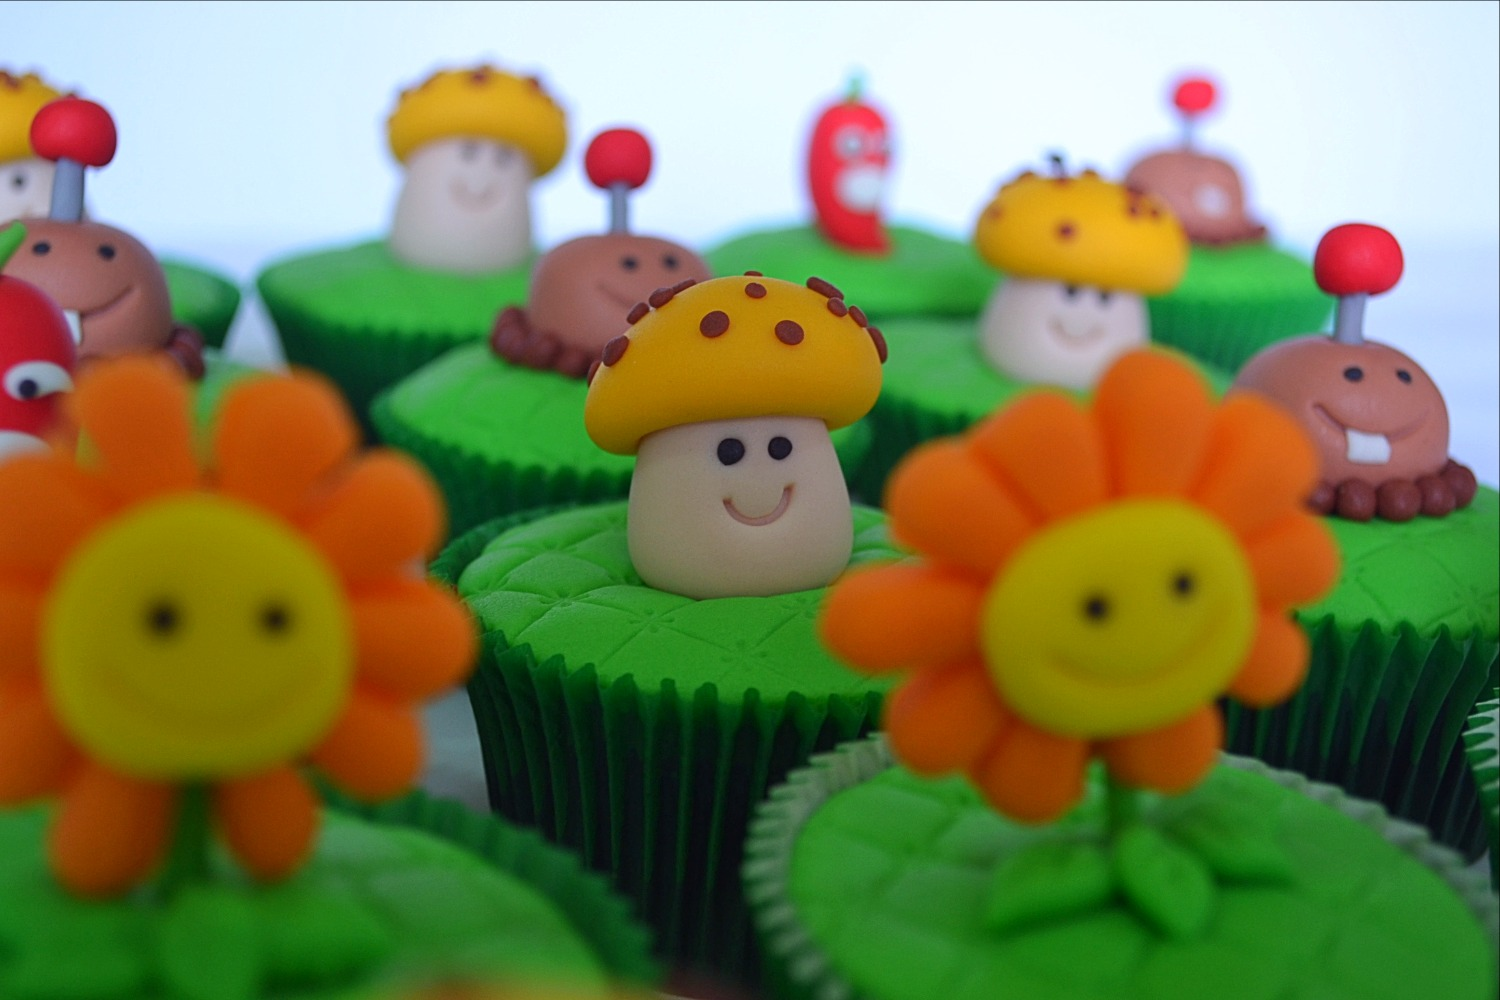 Cupcakes Plants vs Zombies